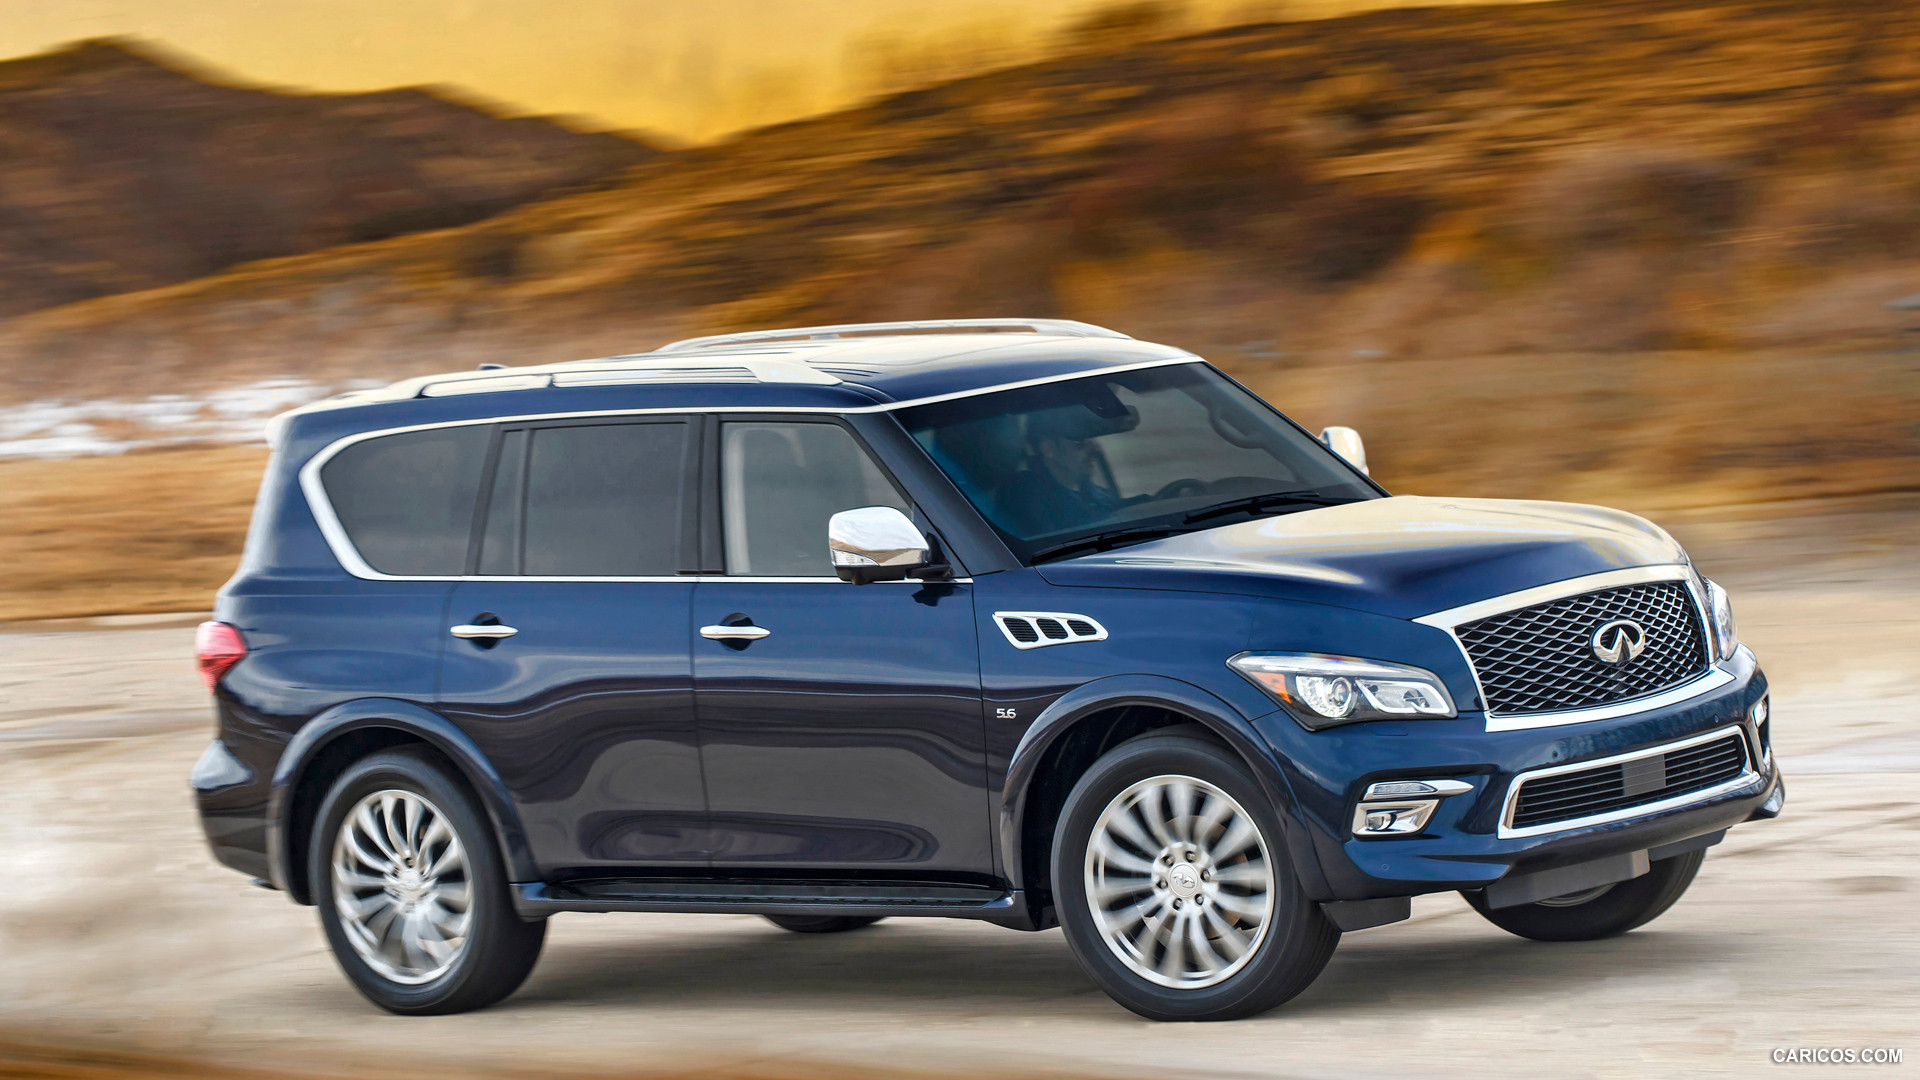 1920x1080 - Infiniti QX80 Wallpapers 12